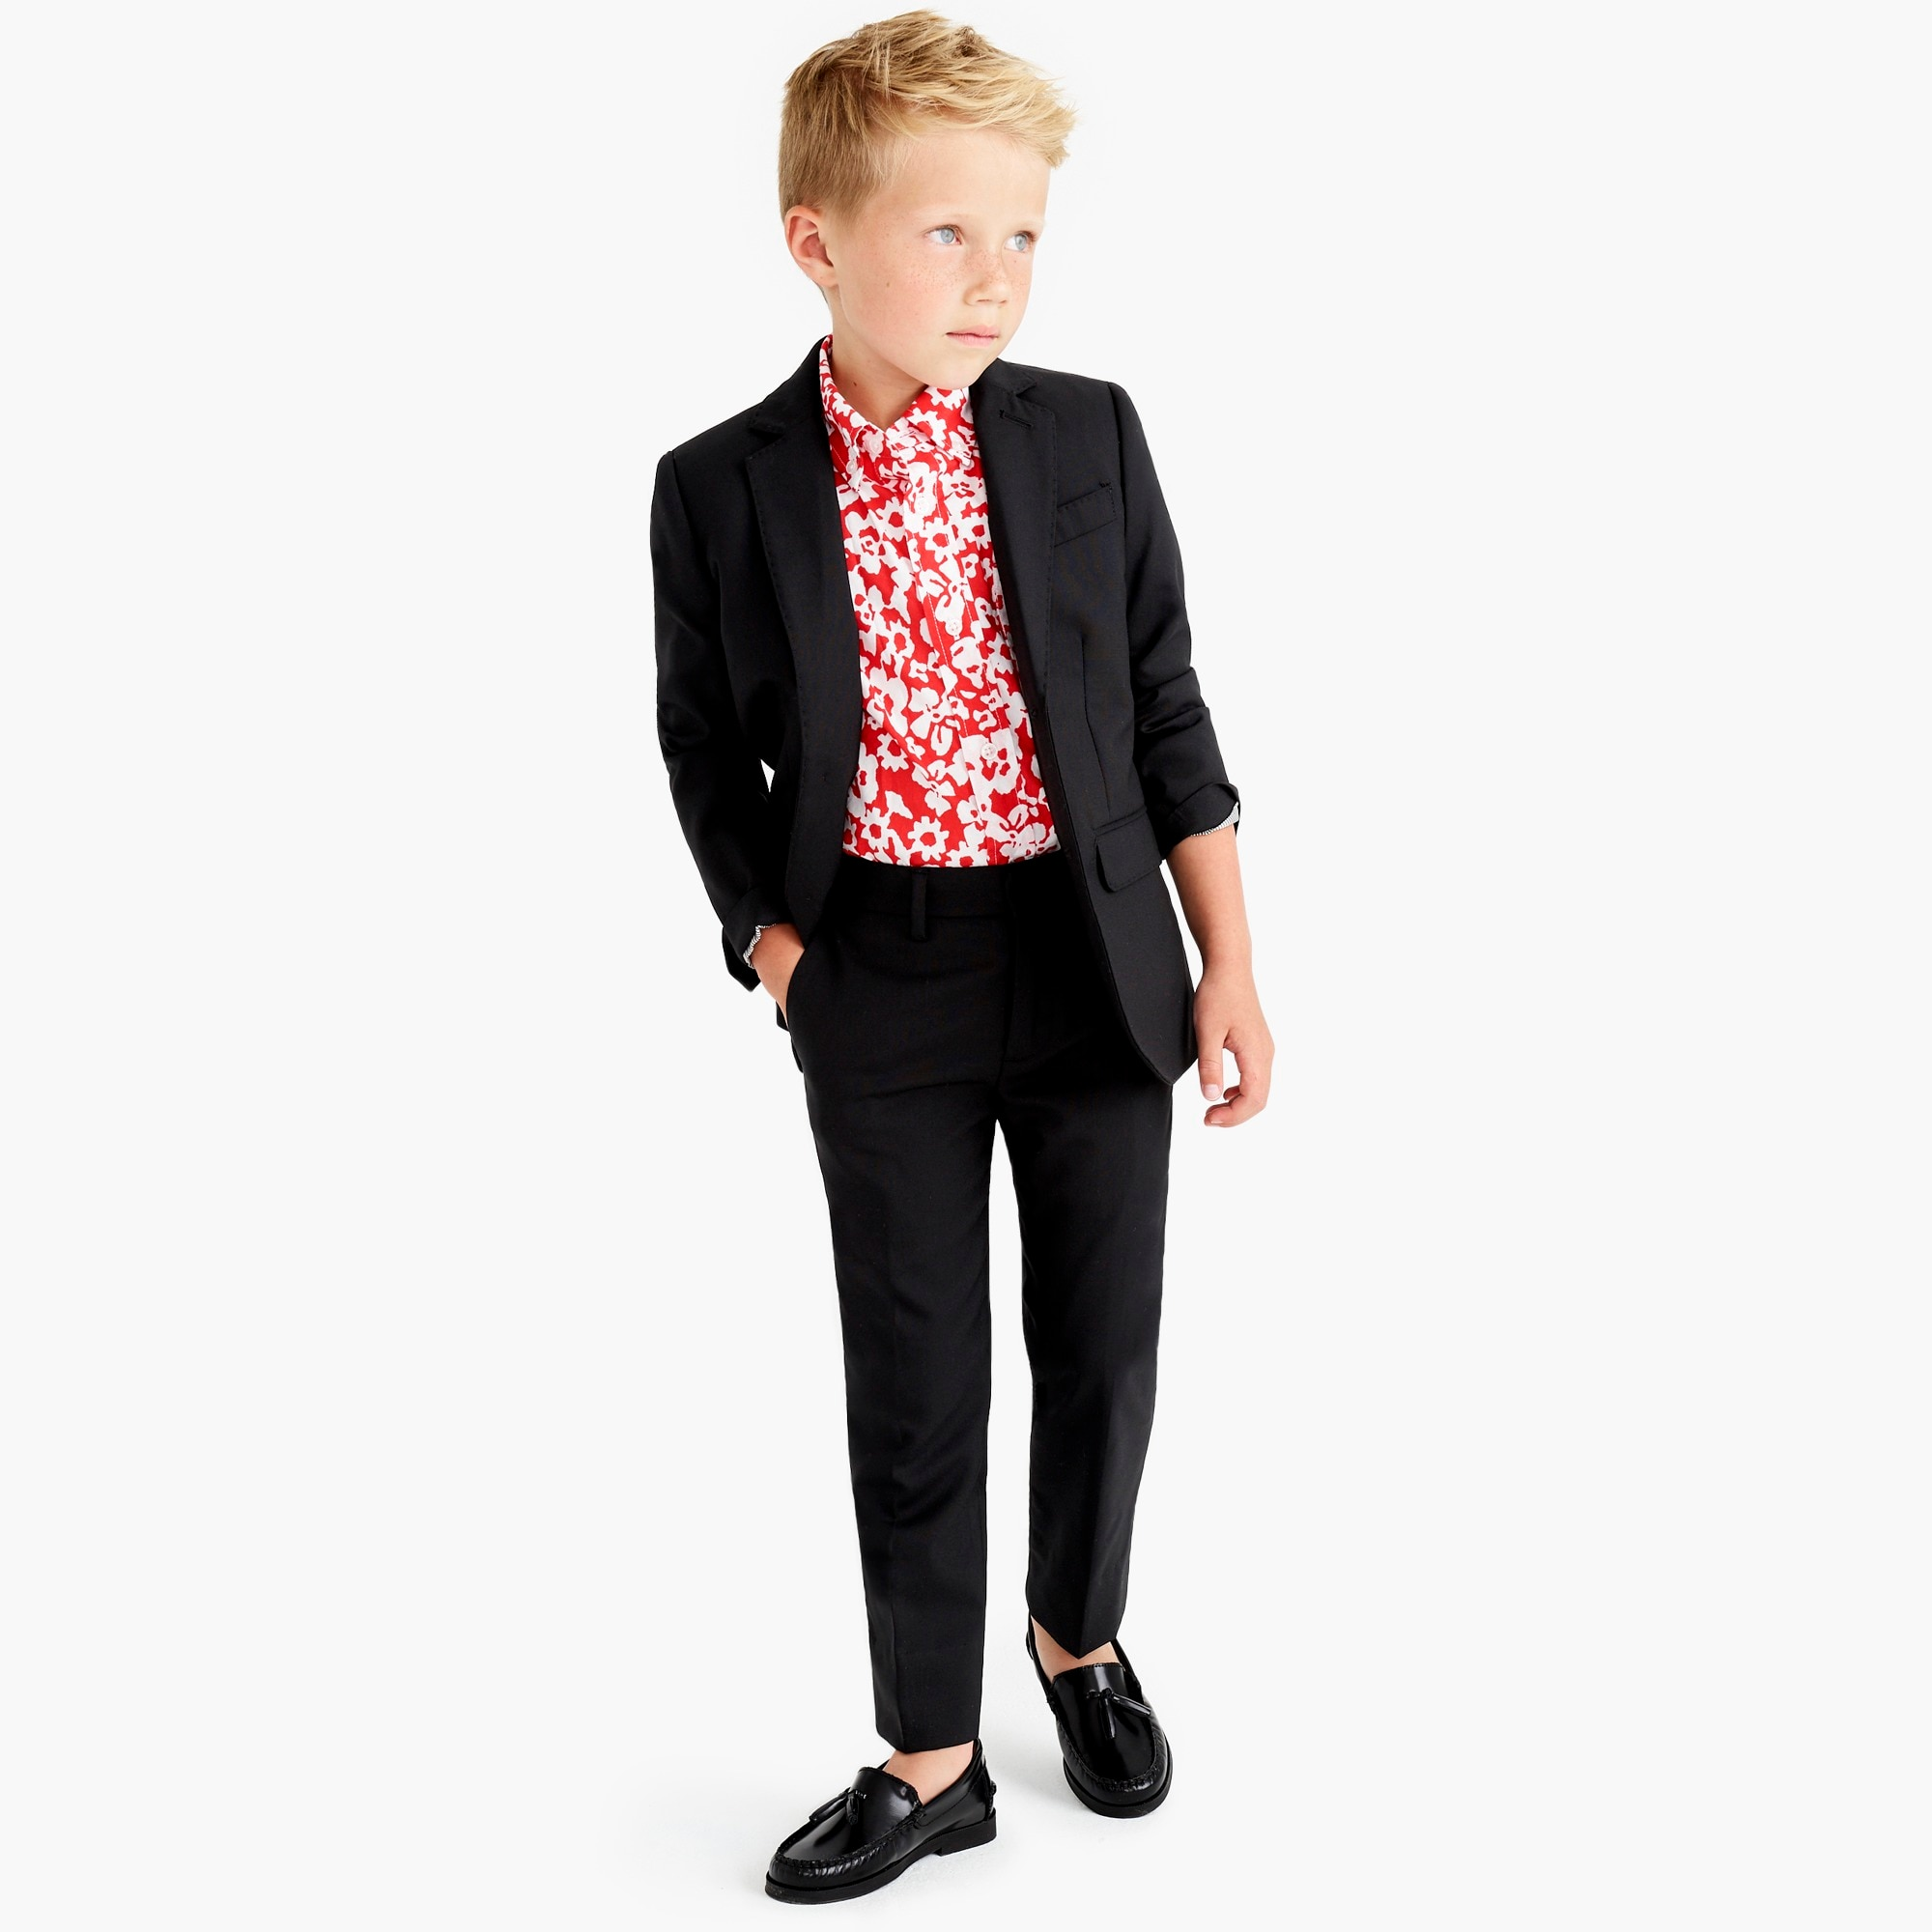 Image 1 for Boys' Ludlow suit jacket in Italian wool